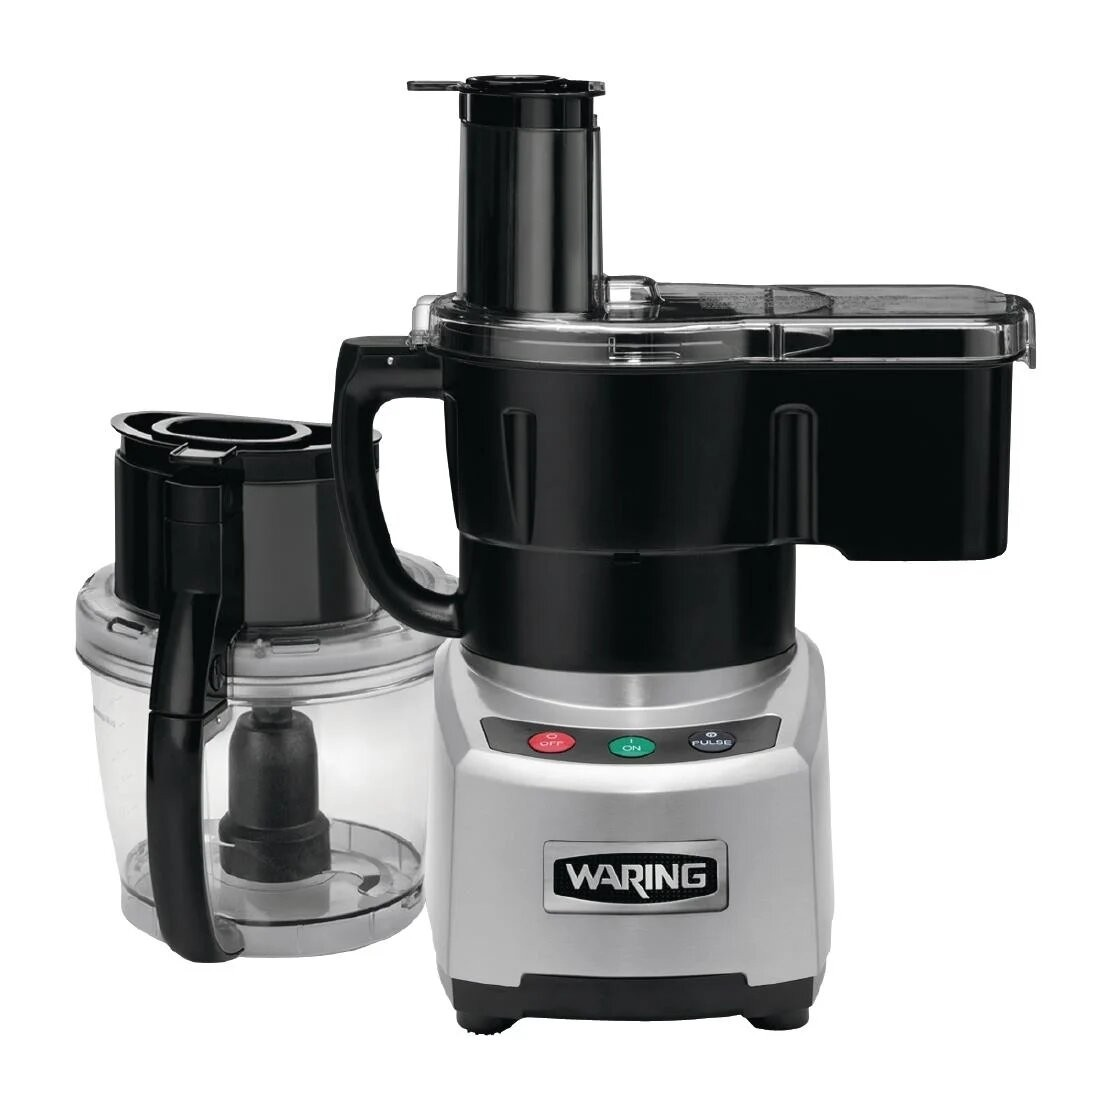 Waring WFP16SCK Single Speed Food Processor with Pulse - GG561